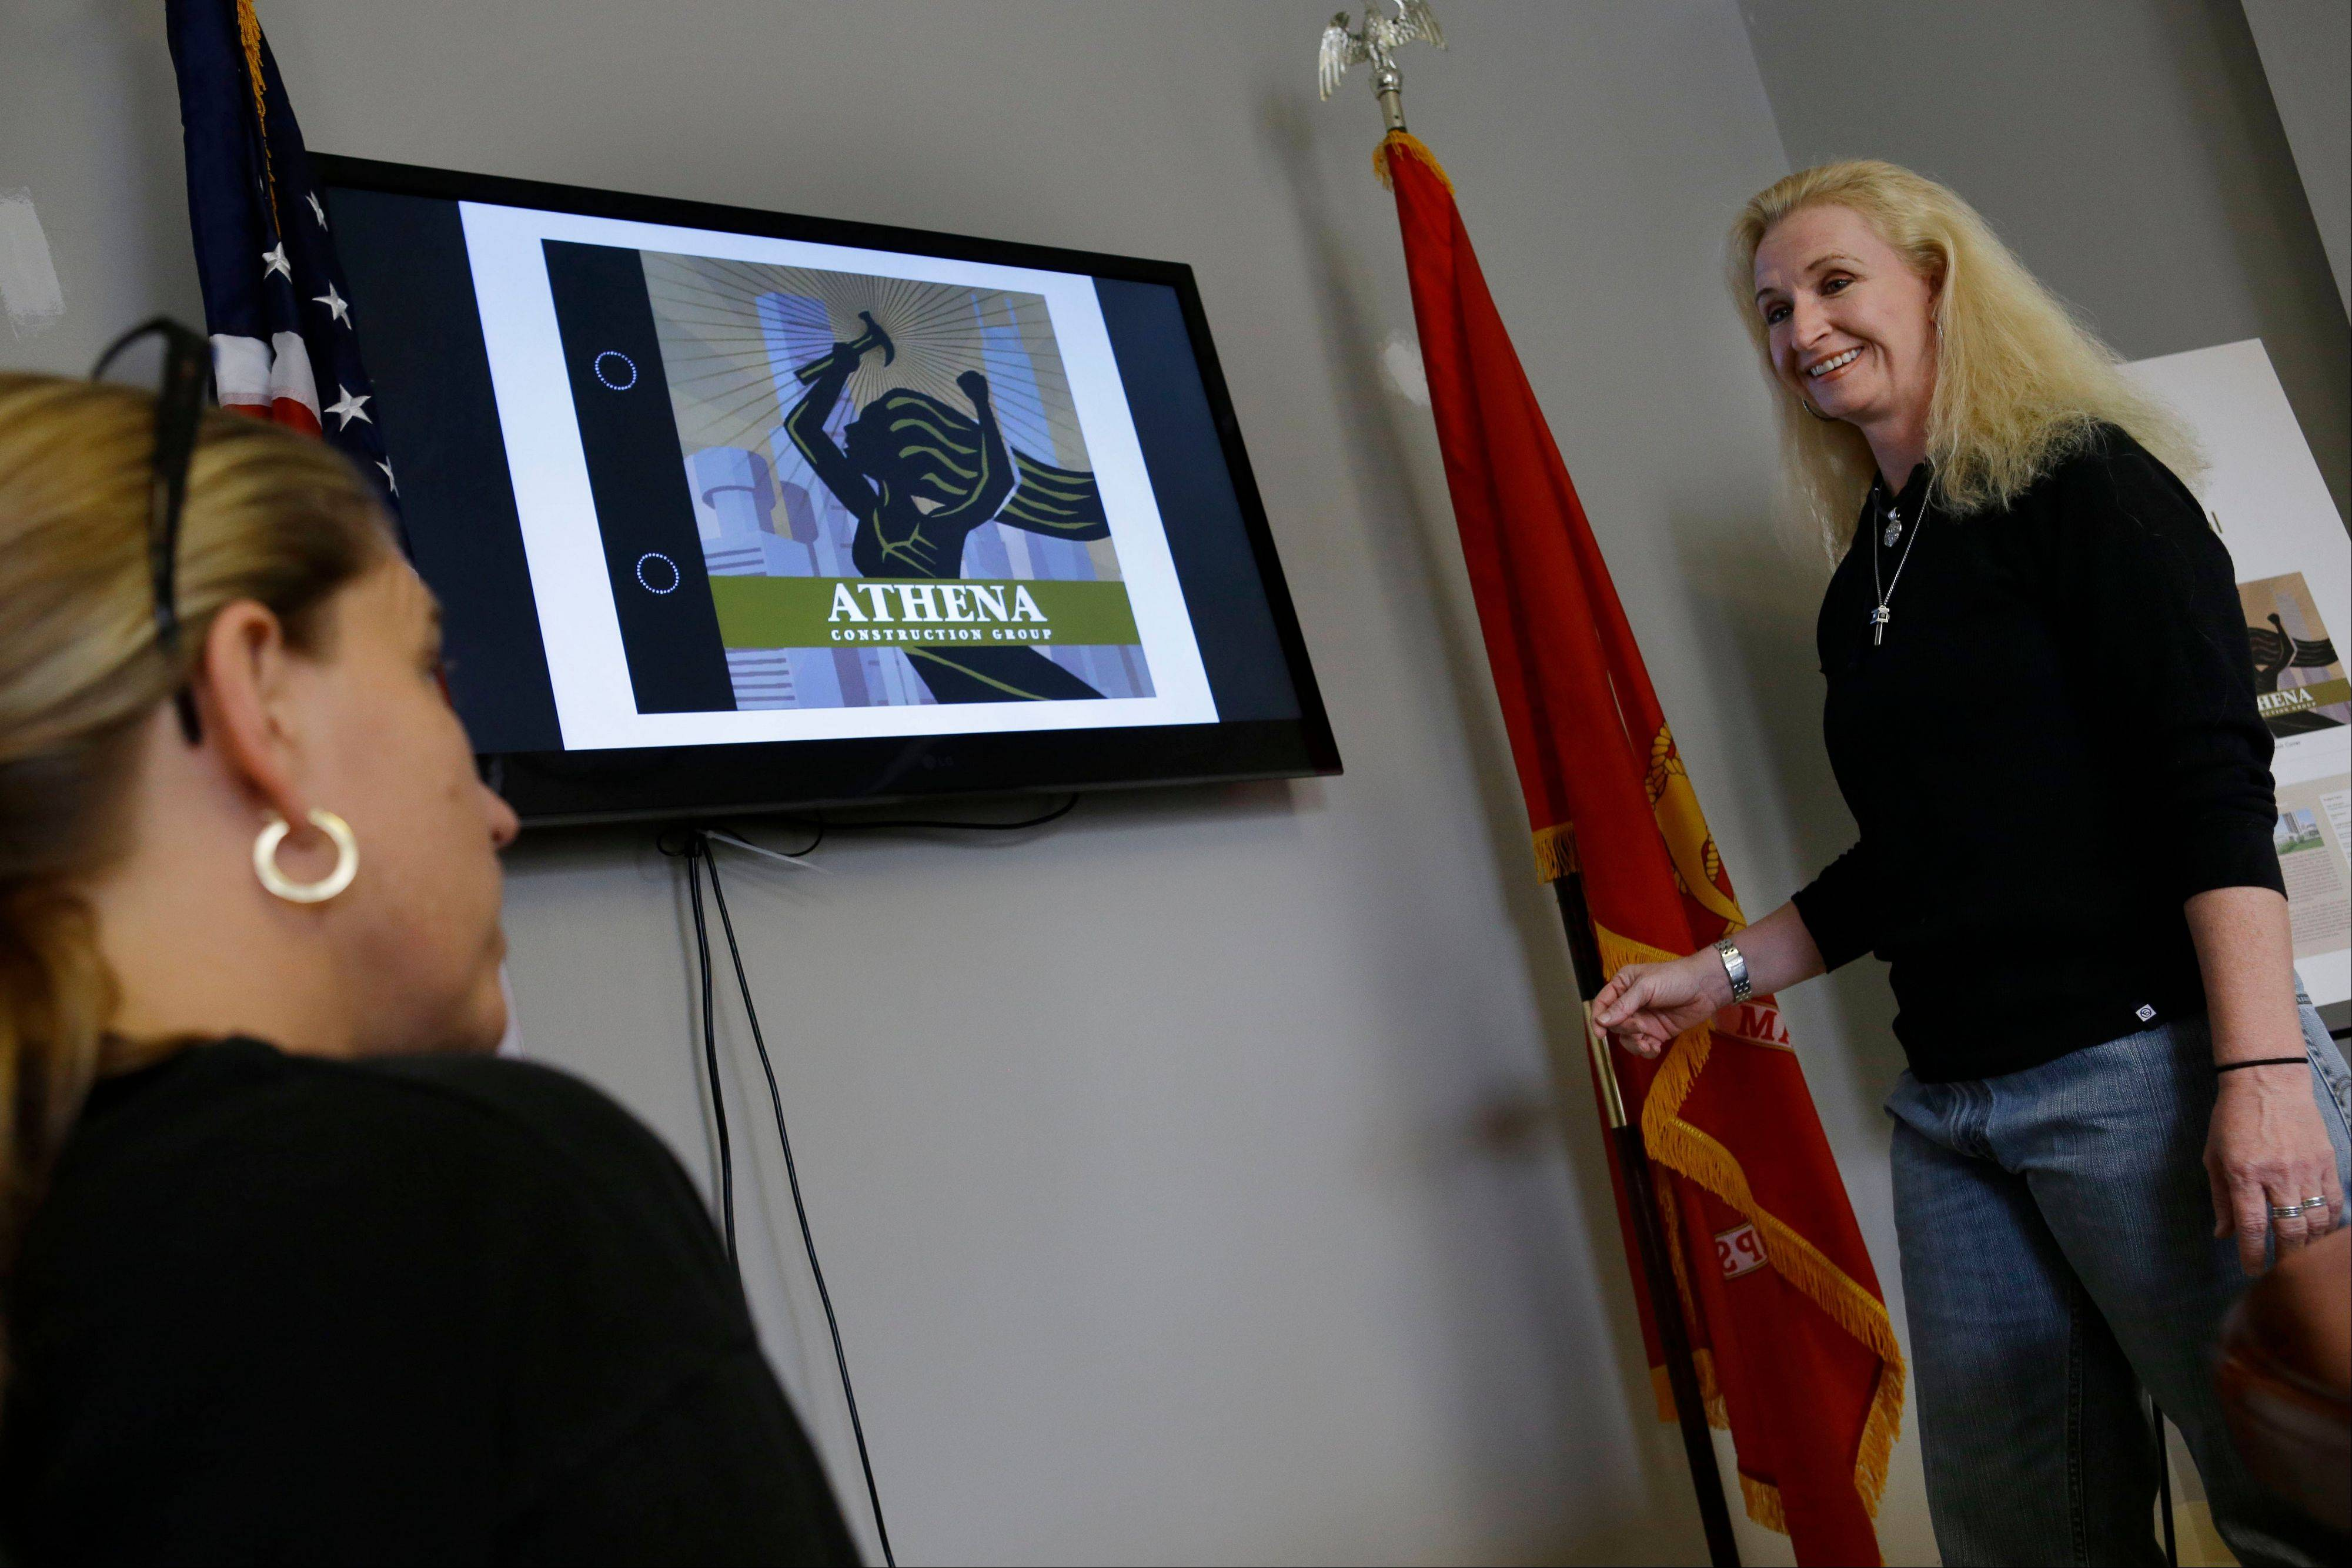 Amber Peebles, right, and Melissa Schneider, talk over a presentation about their business, Athena Construction Group, at their office in Dumfries, Va.